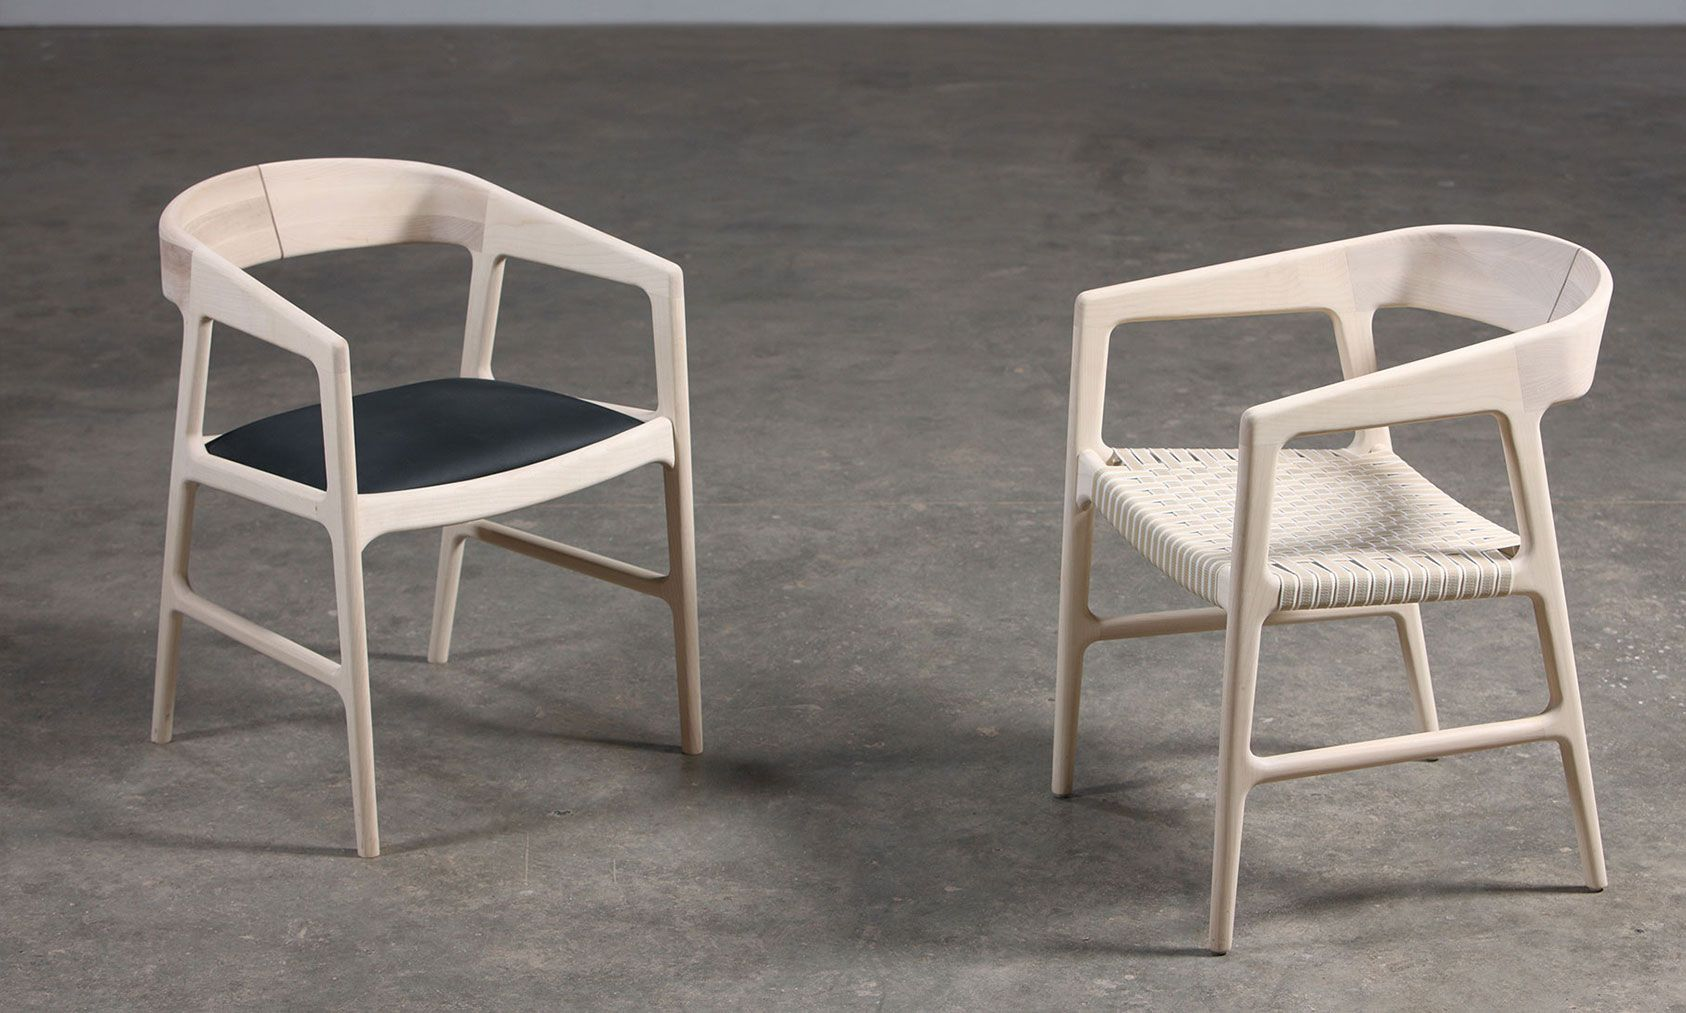 Artisan Solid Wood Furniture   Tesa Chair. Artisan Solid Wood Furniture   Tesa Chair   INTERIOR pieces